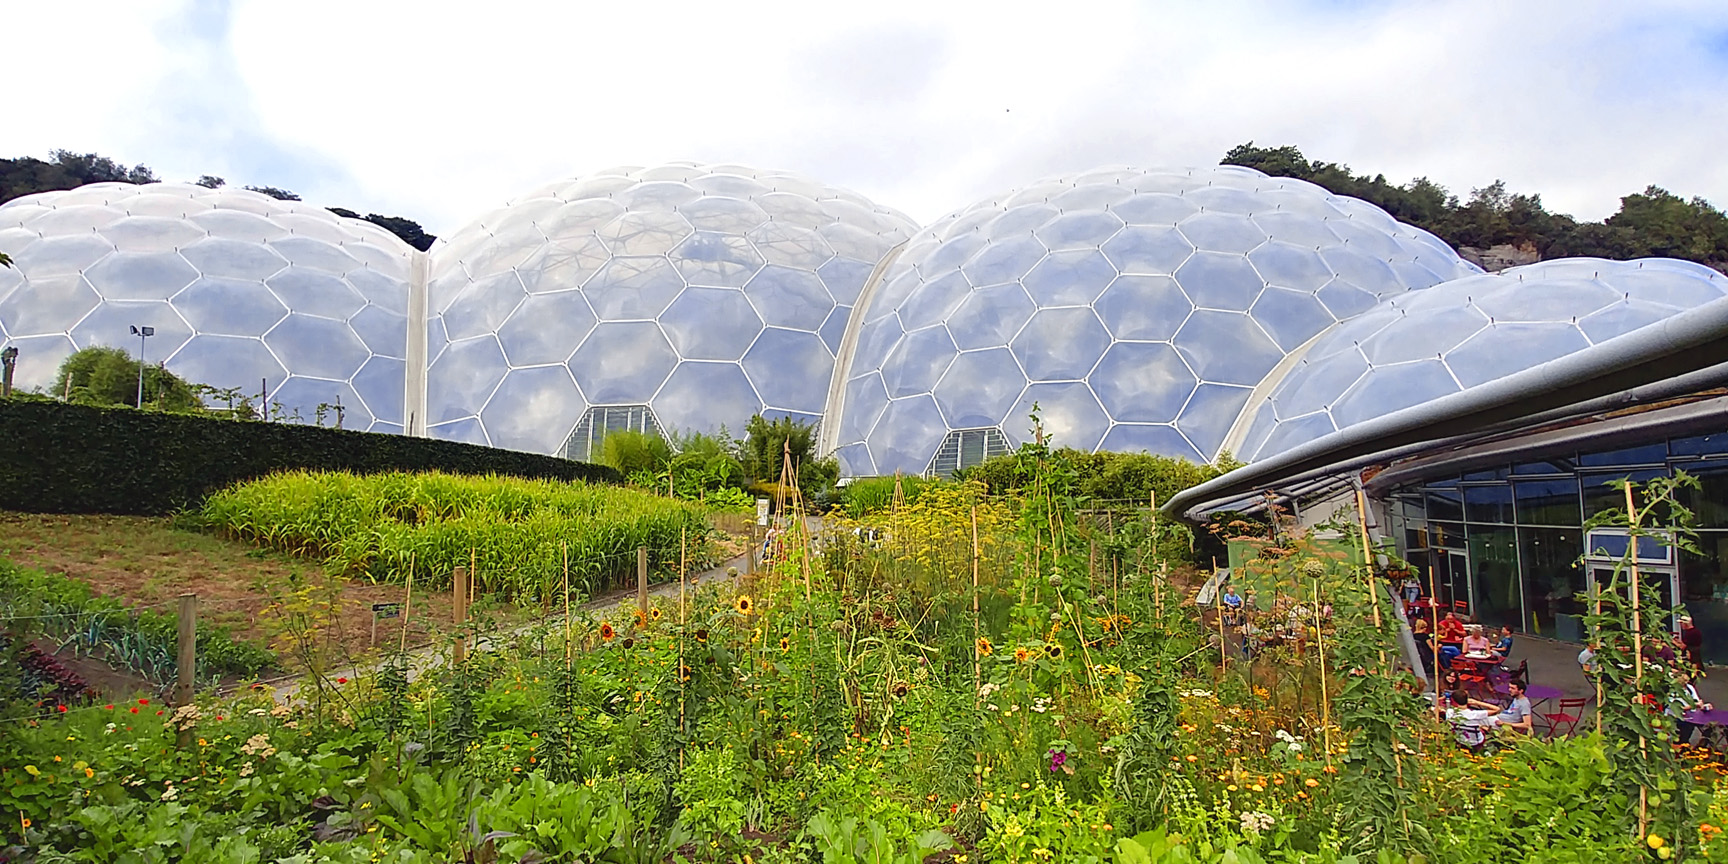 A rain forest under a dome. Eden Project, Cornwall England. Photograph by Mary Charlebois